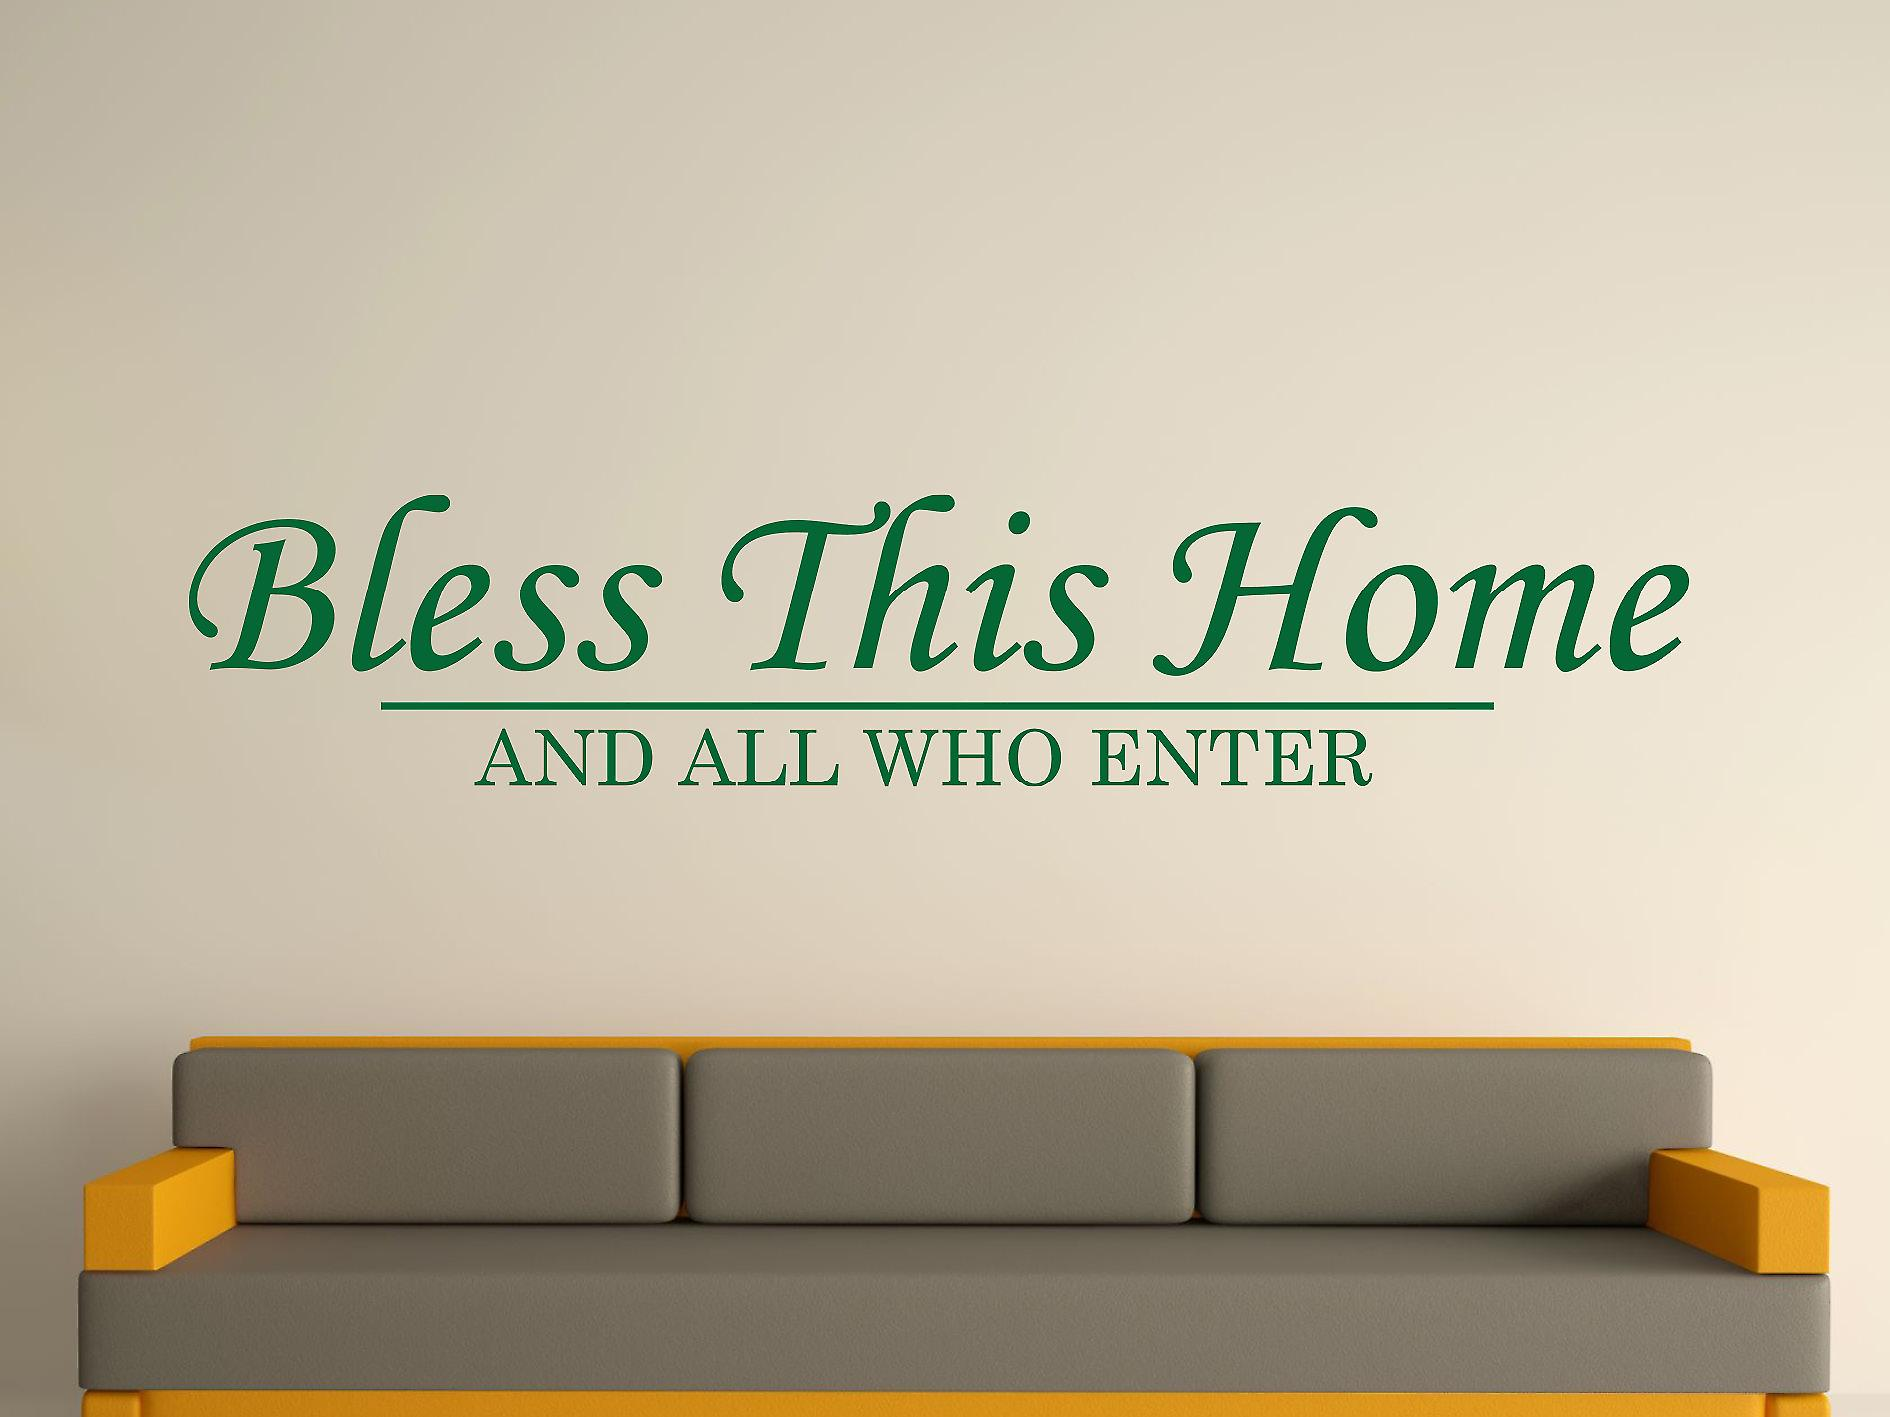 Bless This Home Wall Art Sticker - Racing Green